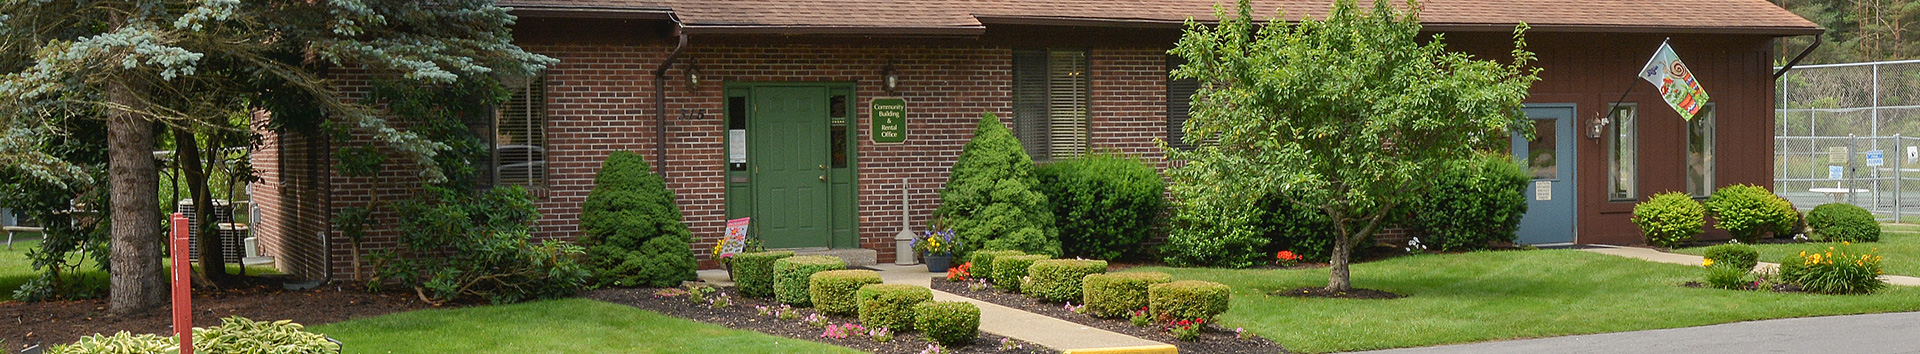 Building outside view of Pikeview Manor Apartments at Manor Communities, Beckley/West Virginia